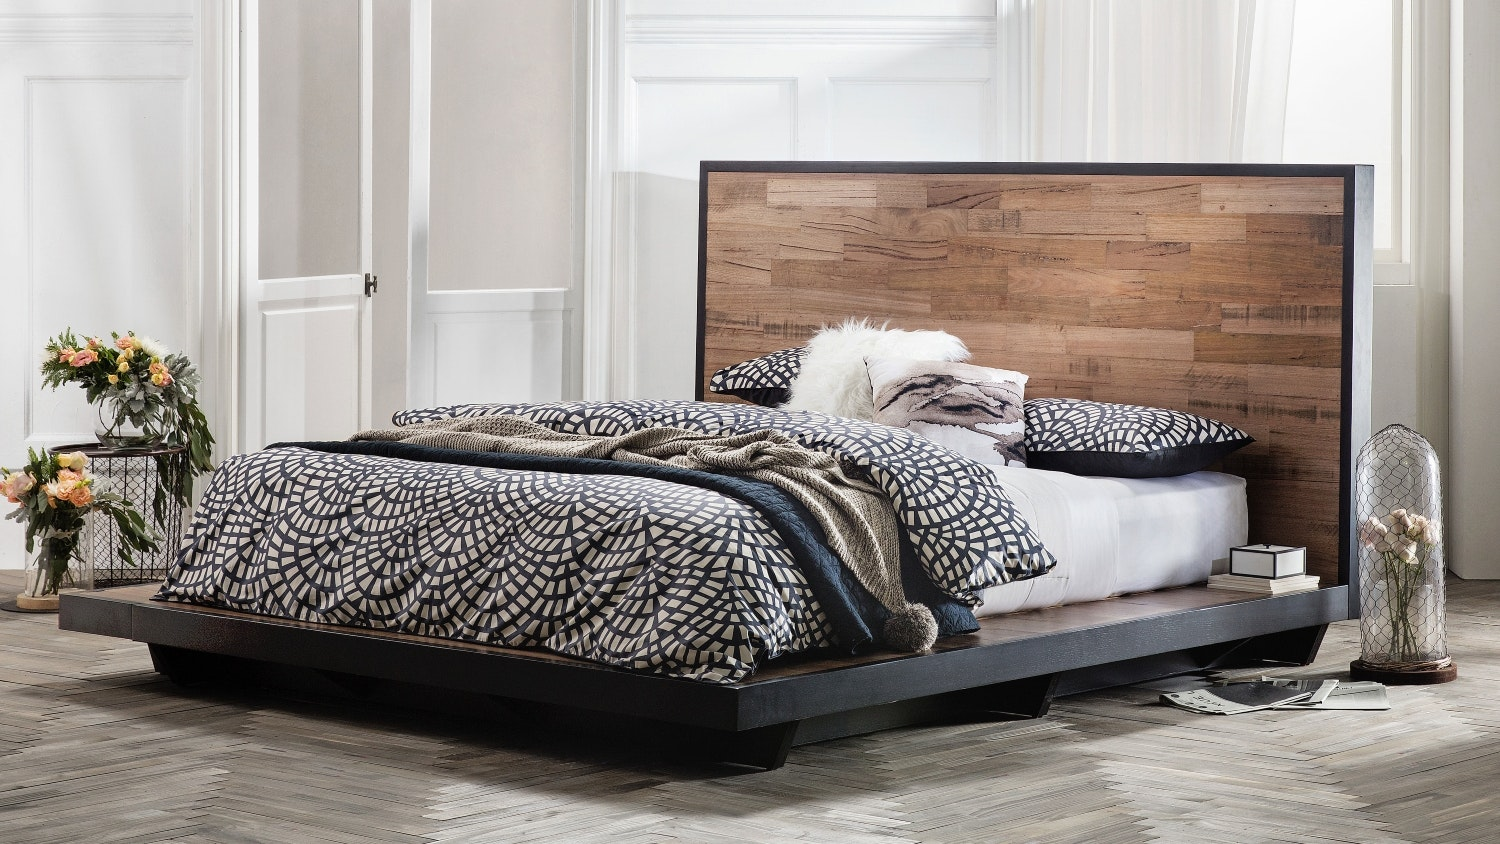 furniture beds  abode bed frame furniture beds s. Furniture Beds  Furniture Bed Beds I   Lenaleestore com